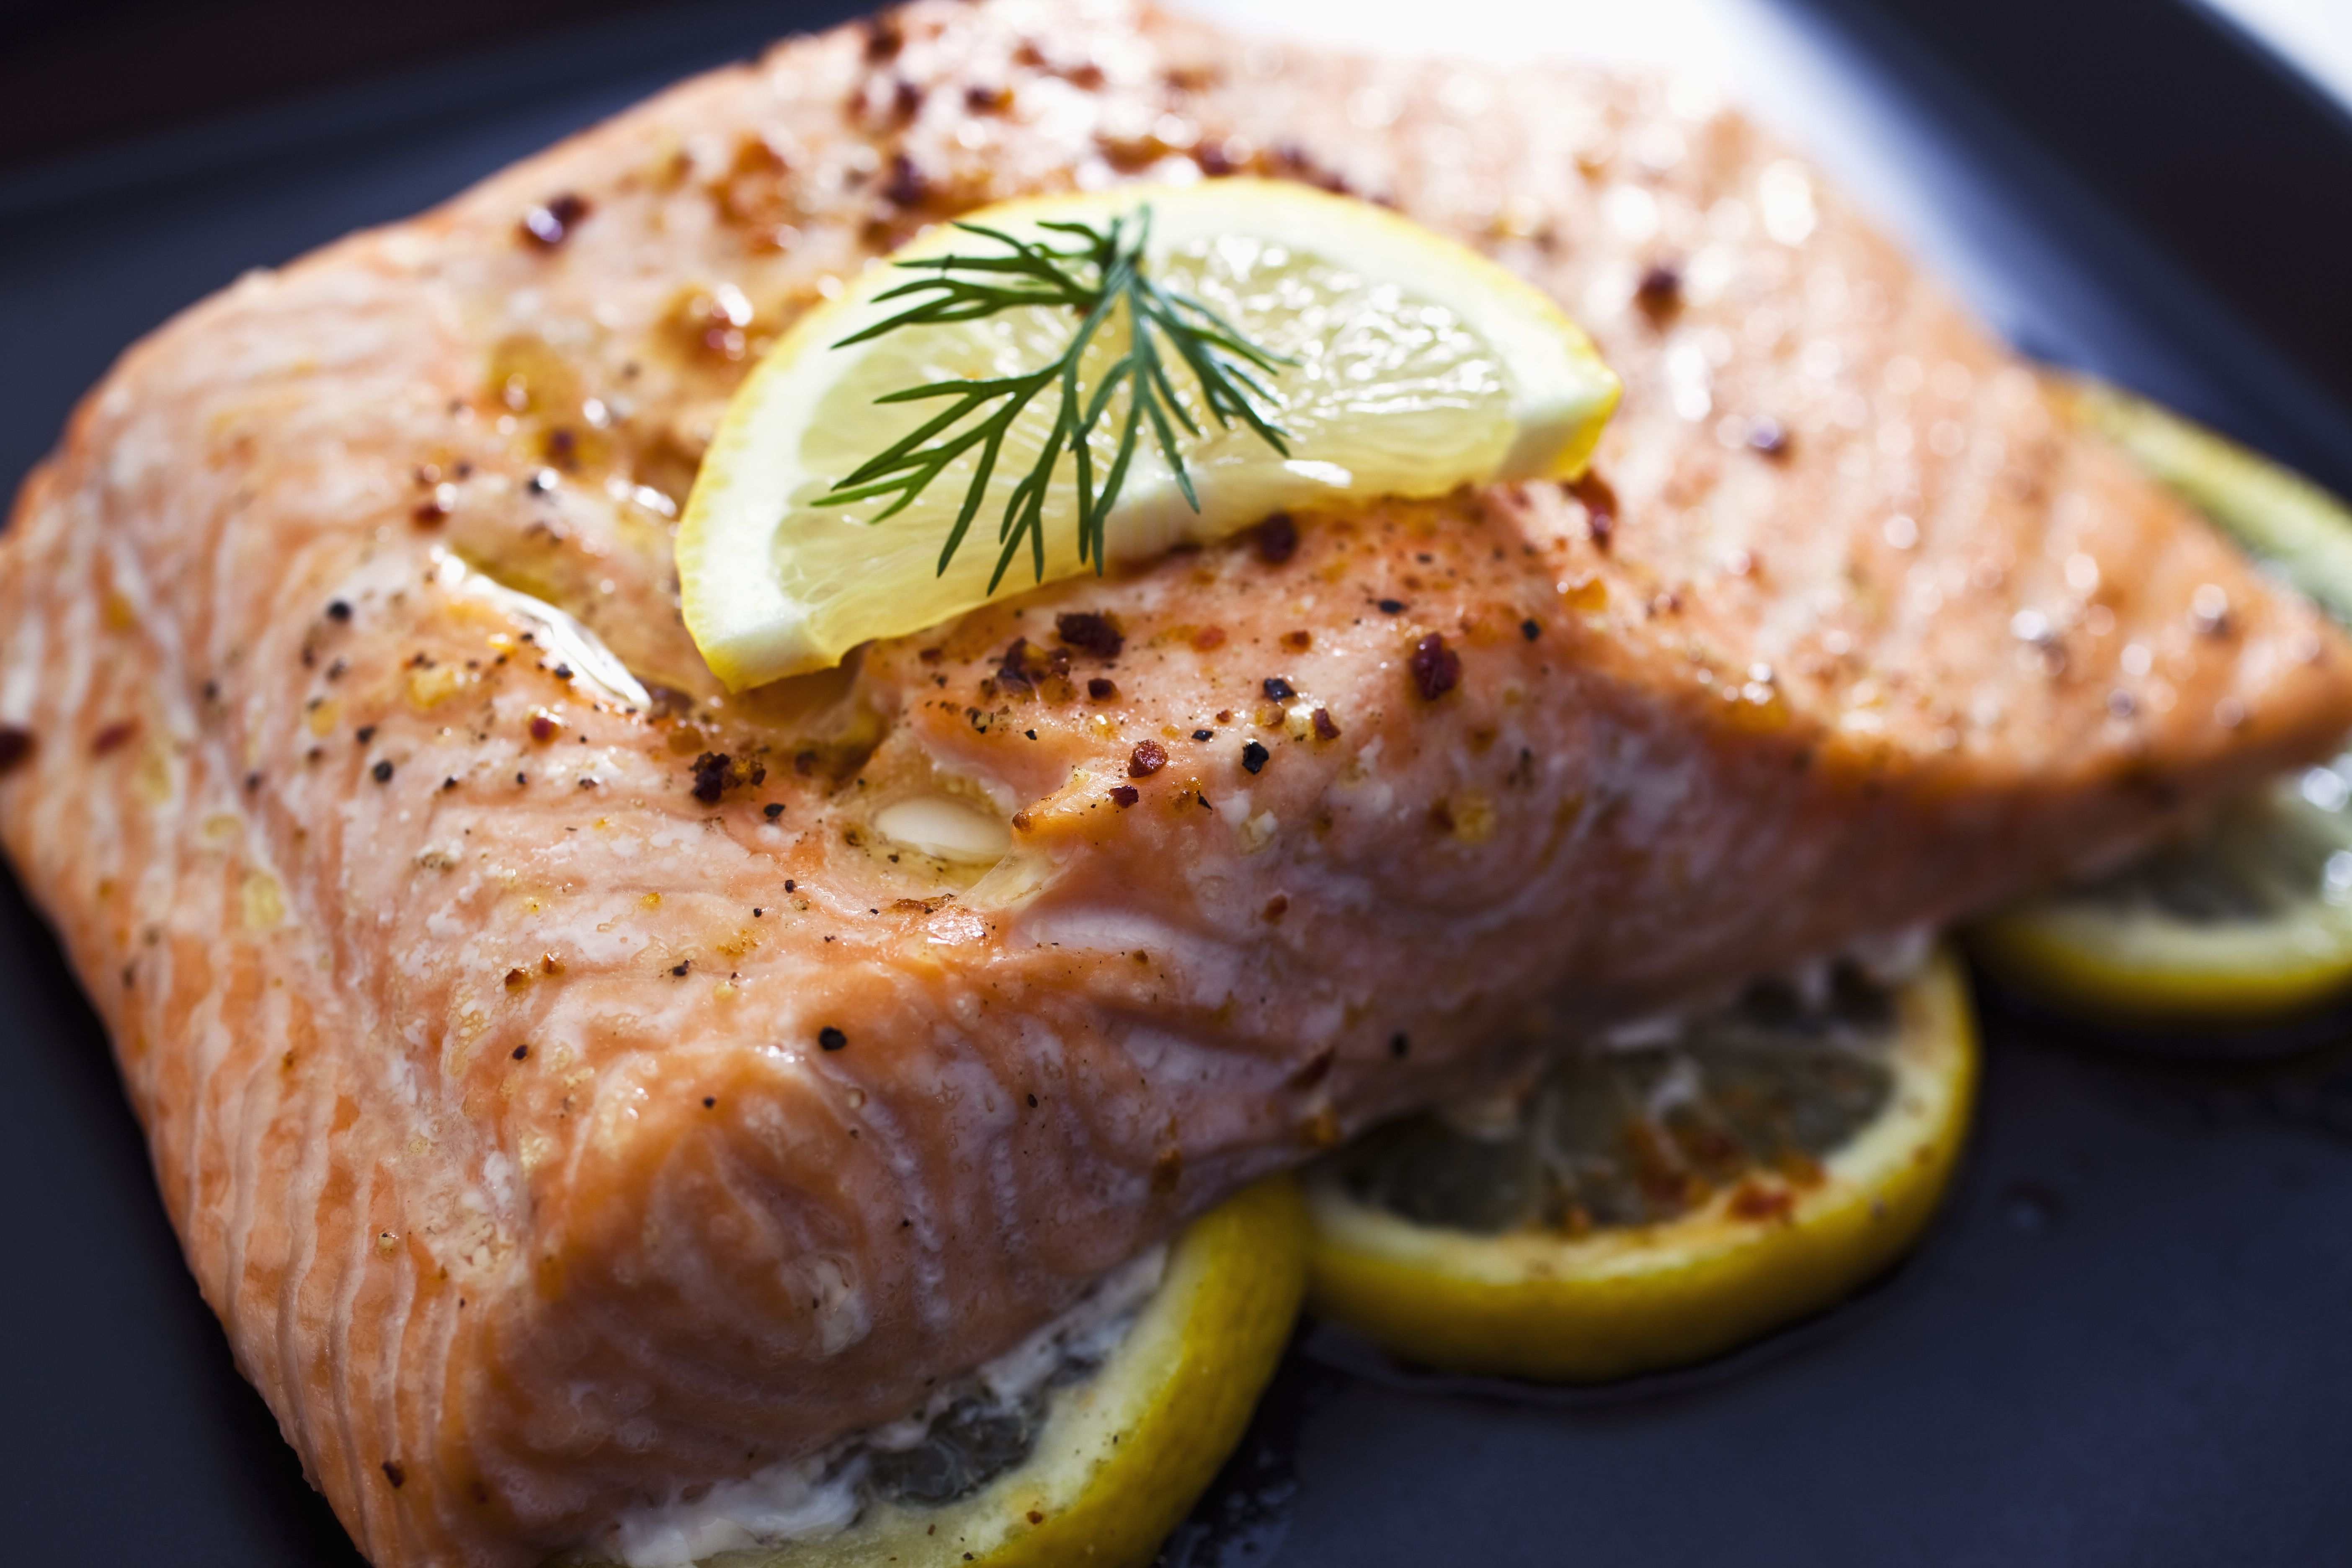 Baked salmon with garlic recipe simple baked salmon fillet with garlic and lemon recipe ccuart Gallery